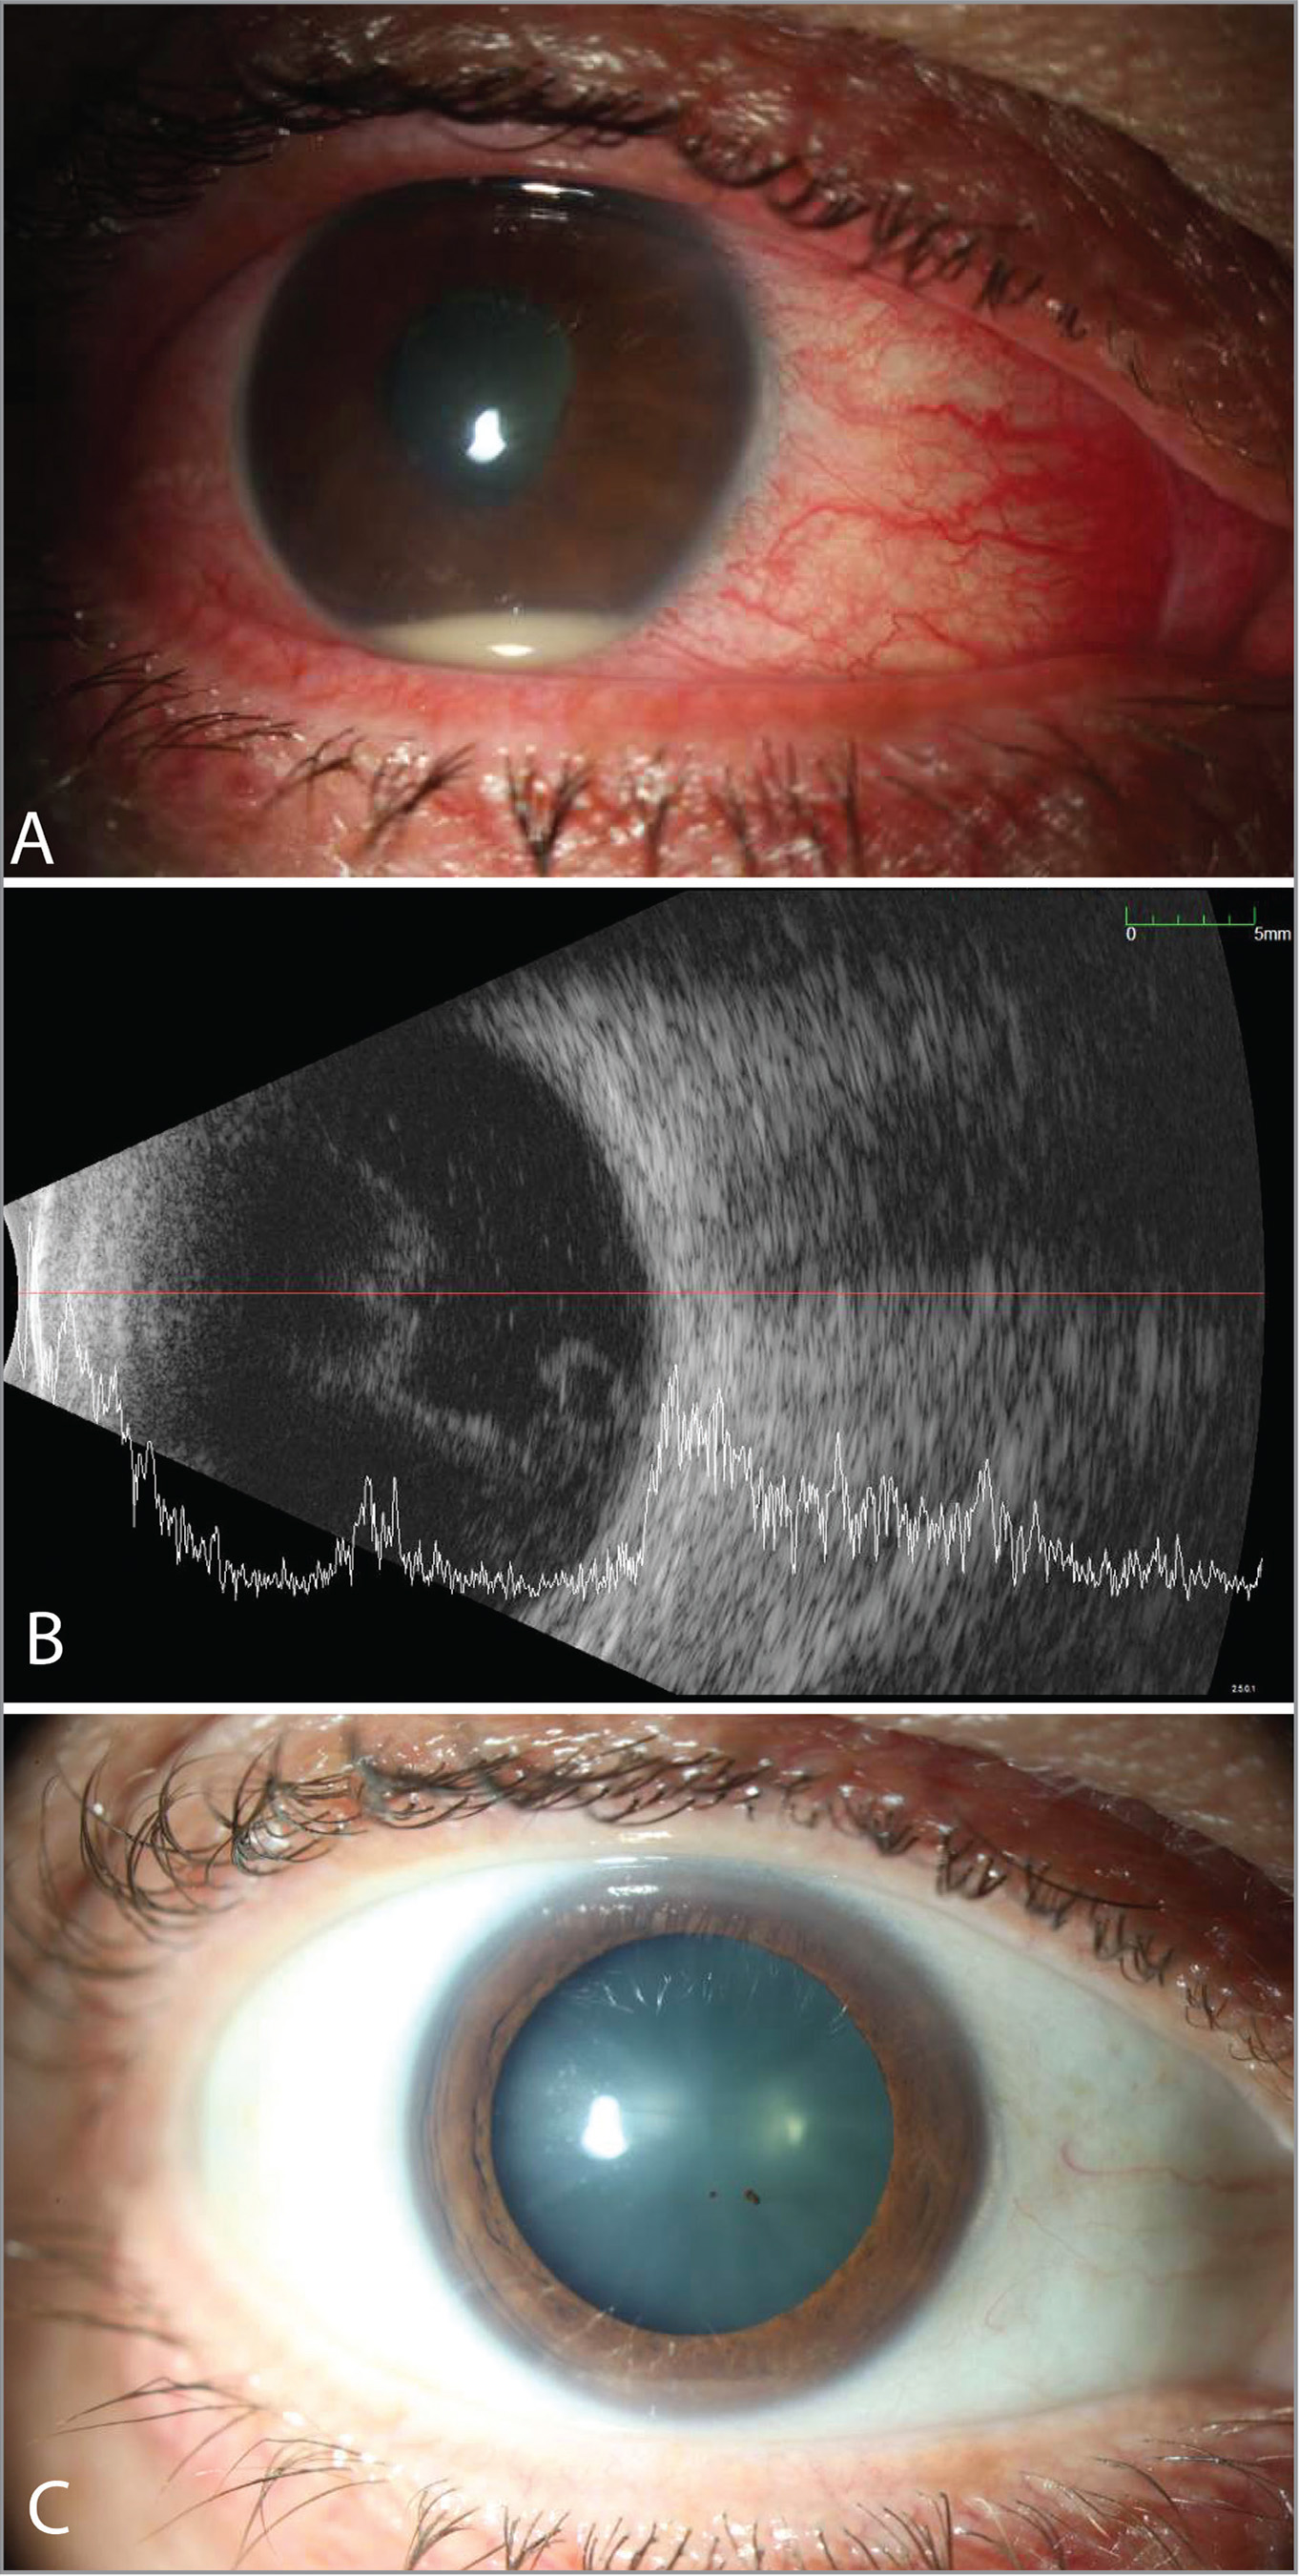 Slit-lamp photograph (A) of Case 2 presenting with diffuse conjunctival injection and a 3-mm layered hypopyon, 4+ cell, and fibrin in the anterior chamber, with B-scan (B) showing vitritis and moderate hyperechoic vitreous opacities 3 days after ranibizumab injection to the right eye. The patient, a 56-year-old phakic, healthy male, had received six prior ranibizumab injections for cystoid macular edema associated with a perfused central retinal vein occlusion in his right eye without adverse events. He was treated empirically with intravitreal vancomycin and ceftazidime, hourly topical difluprednate, a cycloplegic, and oral prednisone. Following an 8-week injection hiatus, he was switched to intravitreal aflibercept, following which he developed a second inflammatory response. Four weeks after similar treatment, the inflammation had resolved (C).